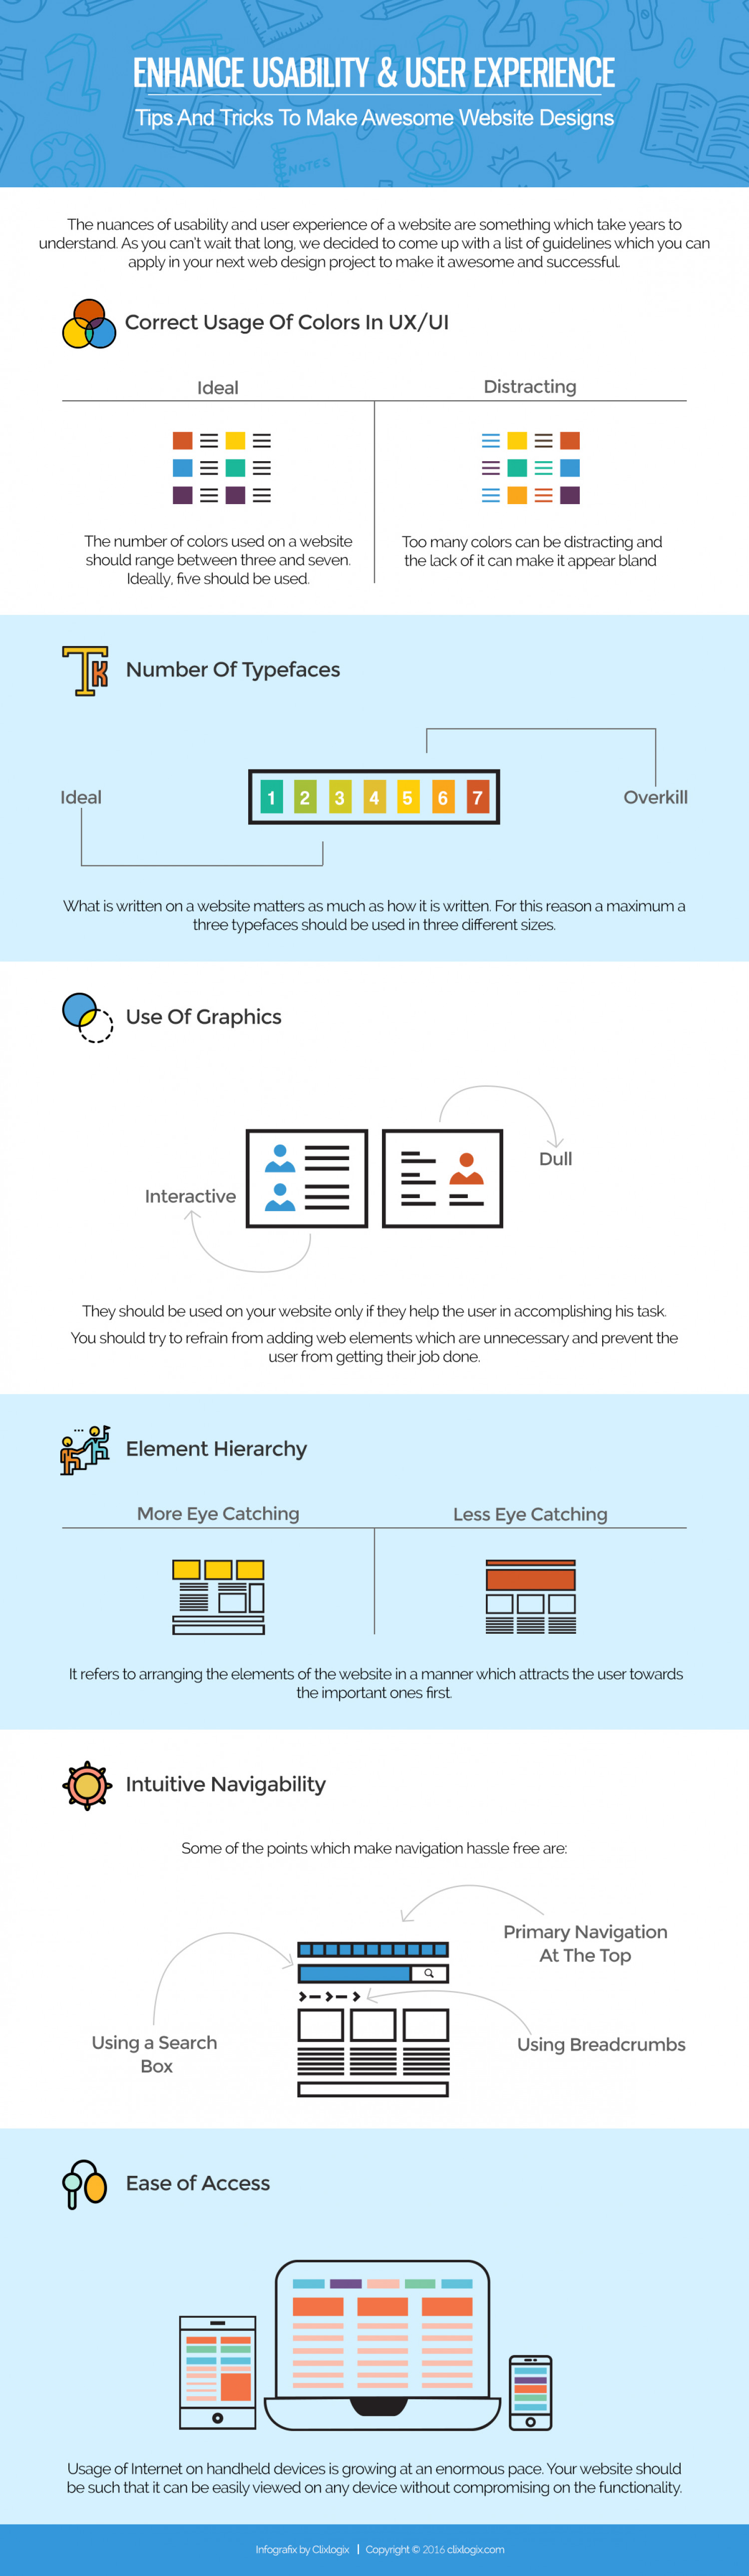 Enhance Usability and User Experience: Tips & Tricks to Make Awesome Web Designs Infographic